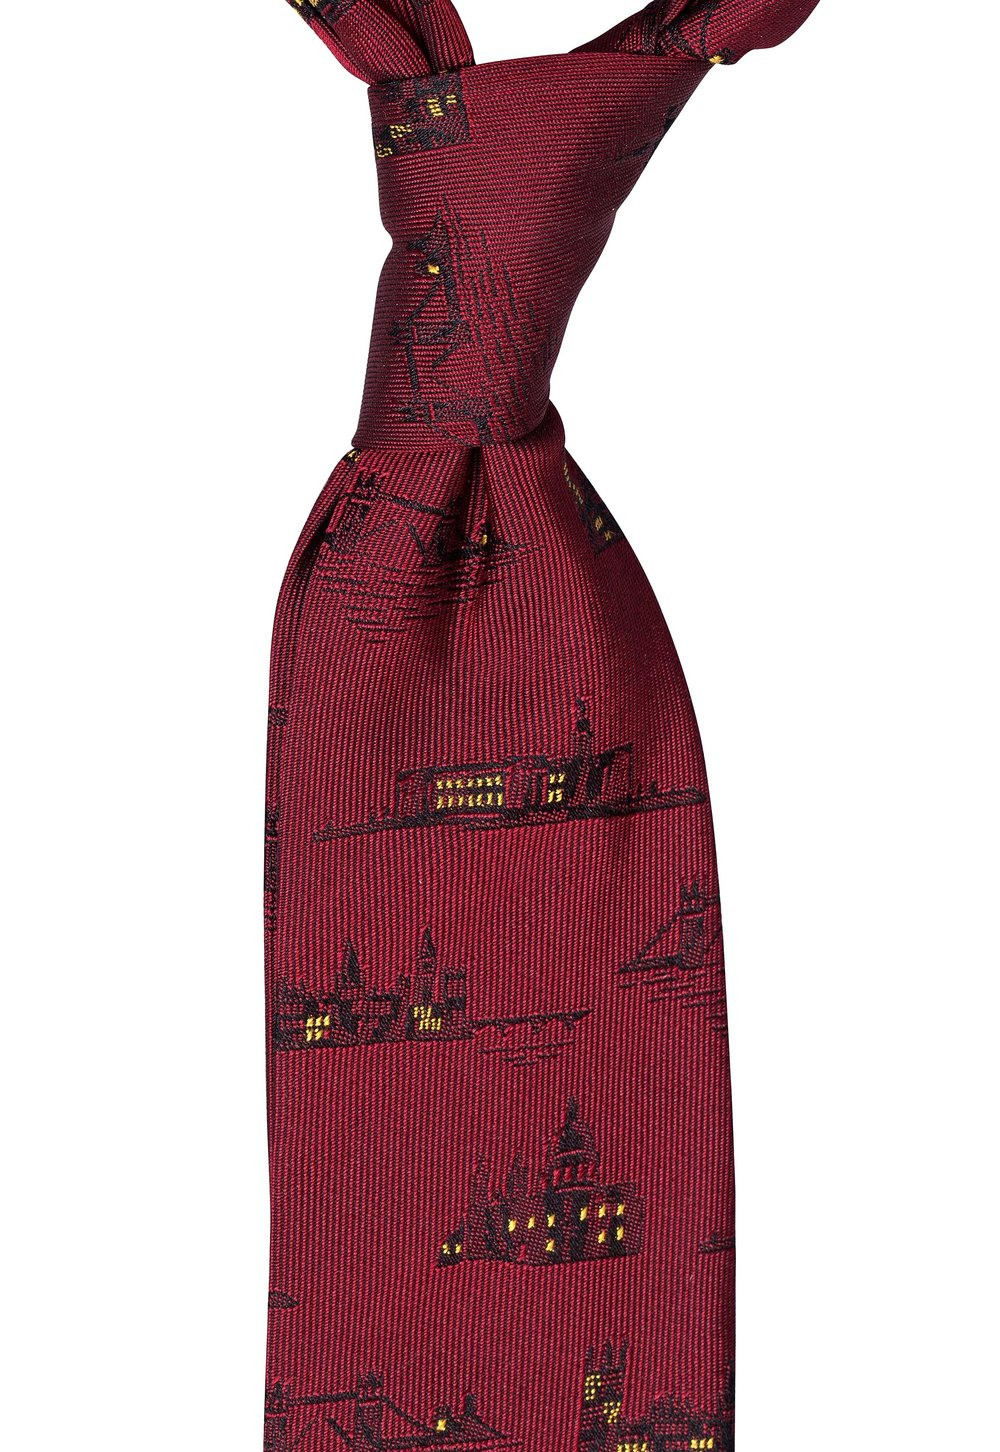 Mr. London Tie. The closest to red you can purchase is the Mr. London tie, which has a rich burgundy colour with black victorian famous London landmarks. Read more about it here in last weeks post.